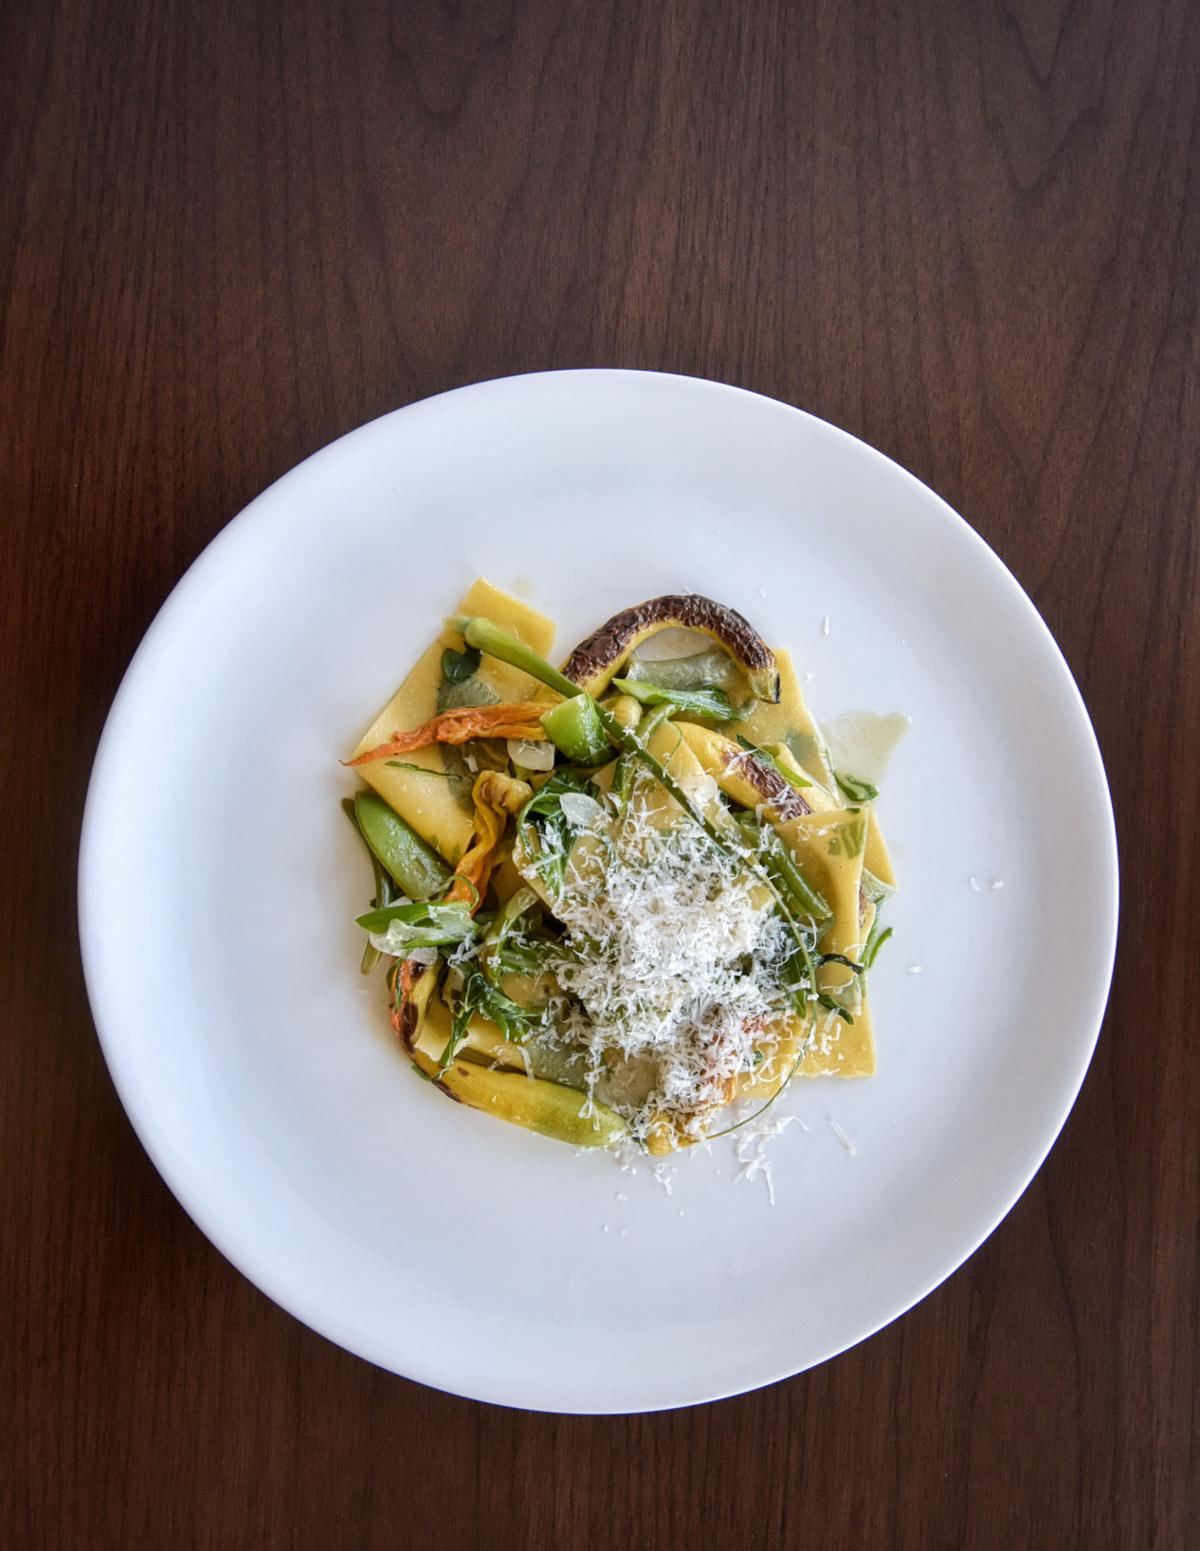 Herb inlay pasta with summer vegetables